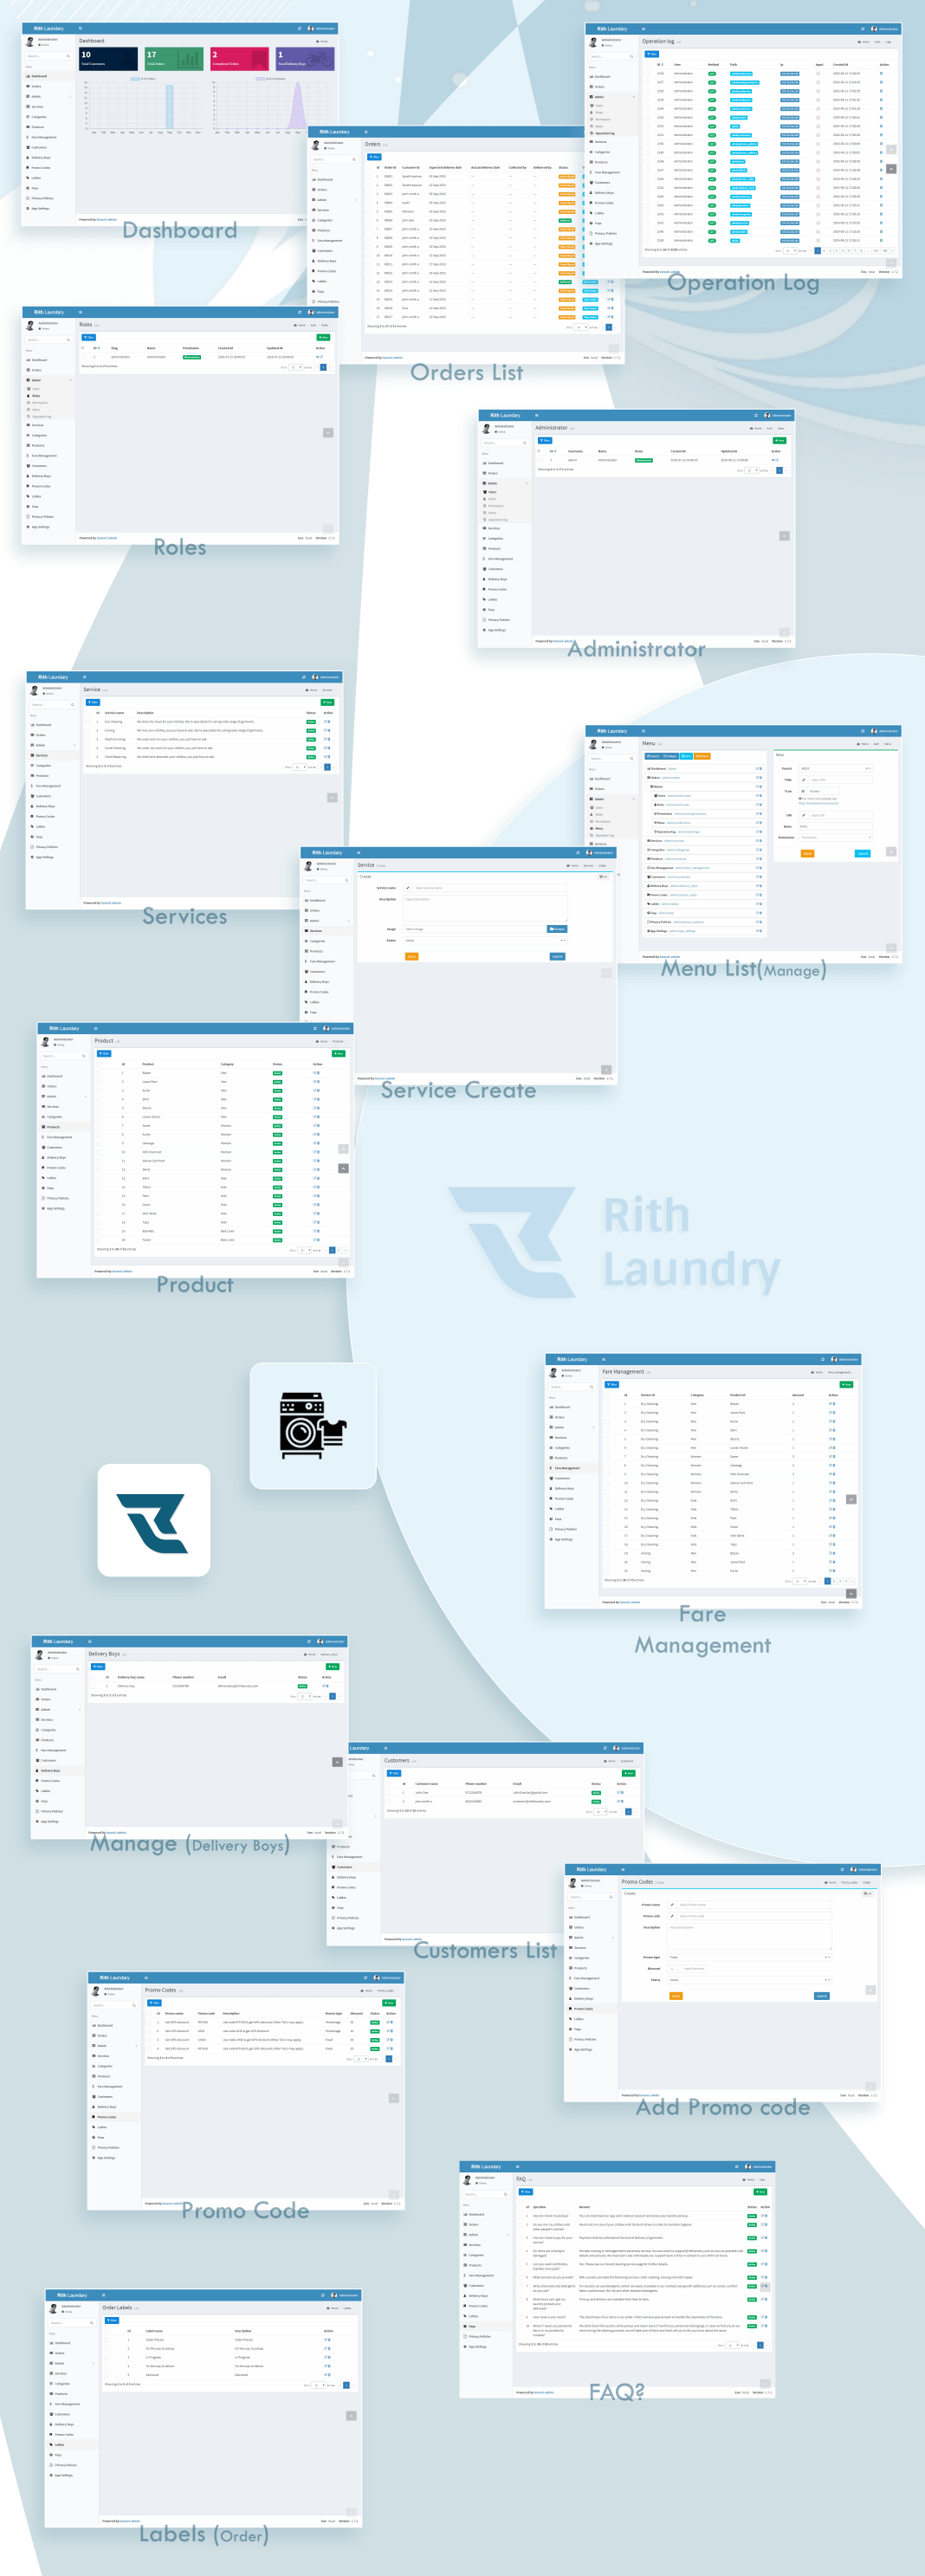 , Rith Laundry React Native App, Laravel & VueJs, Laravel & VueJs